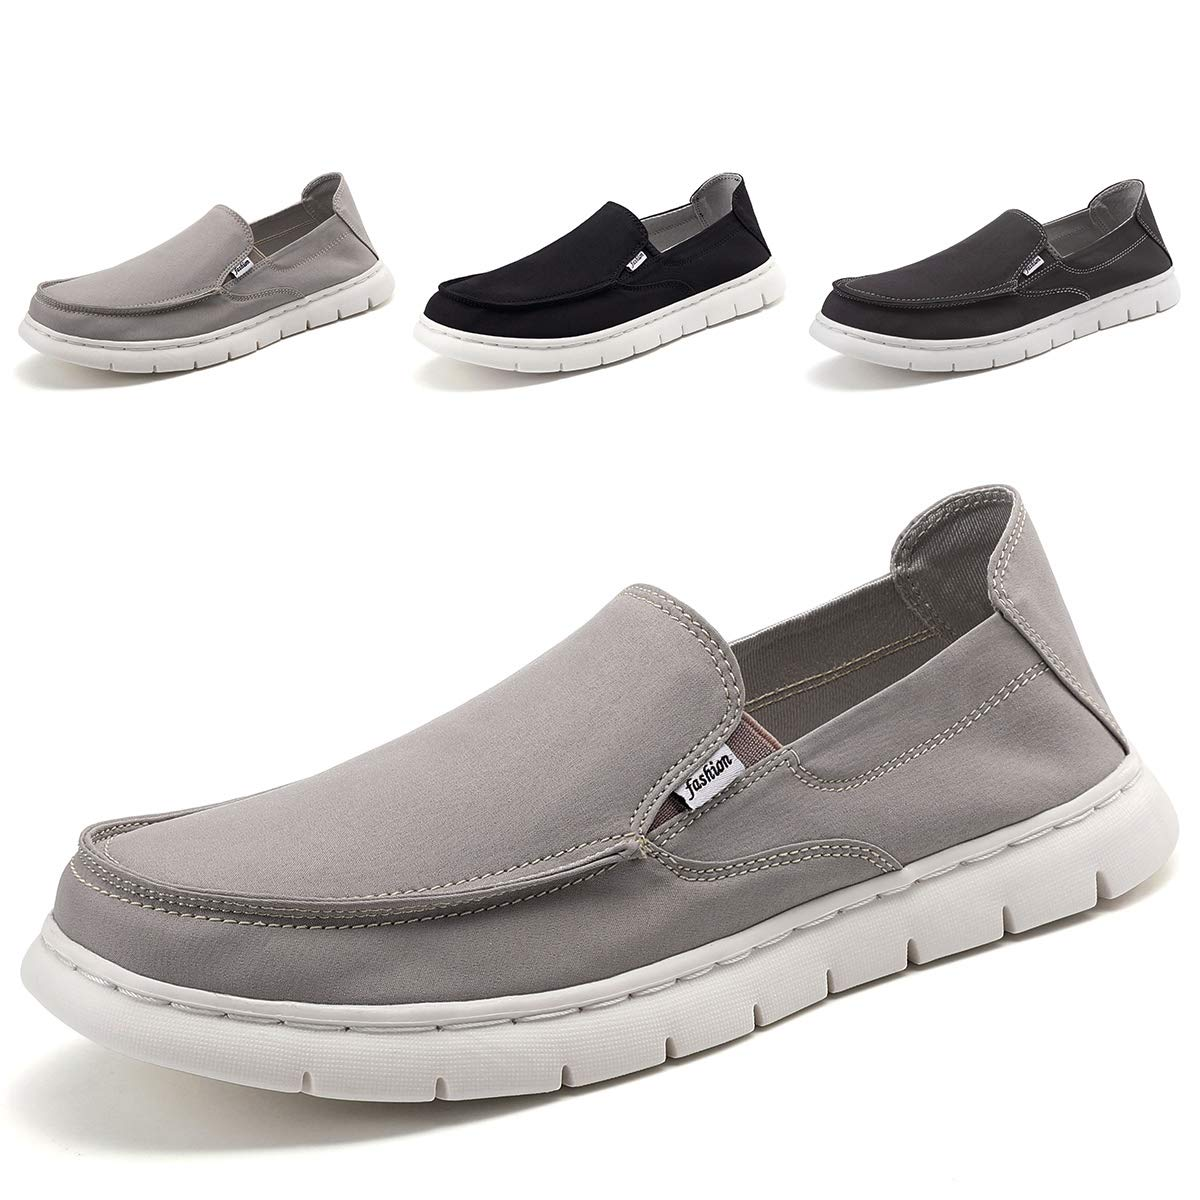 clear and distinctive classic find workmanship SONLLEIVOO Mens Deck Shoes Slip on Casual Summer Canvas Shoe Loafers Wide  Width